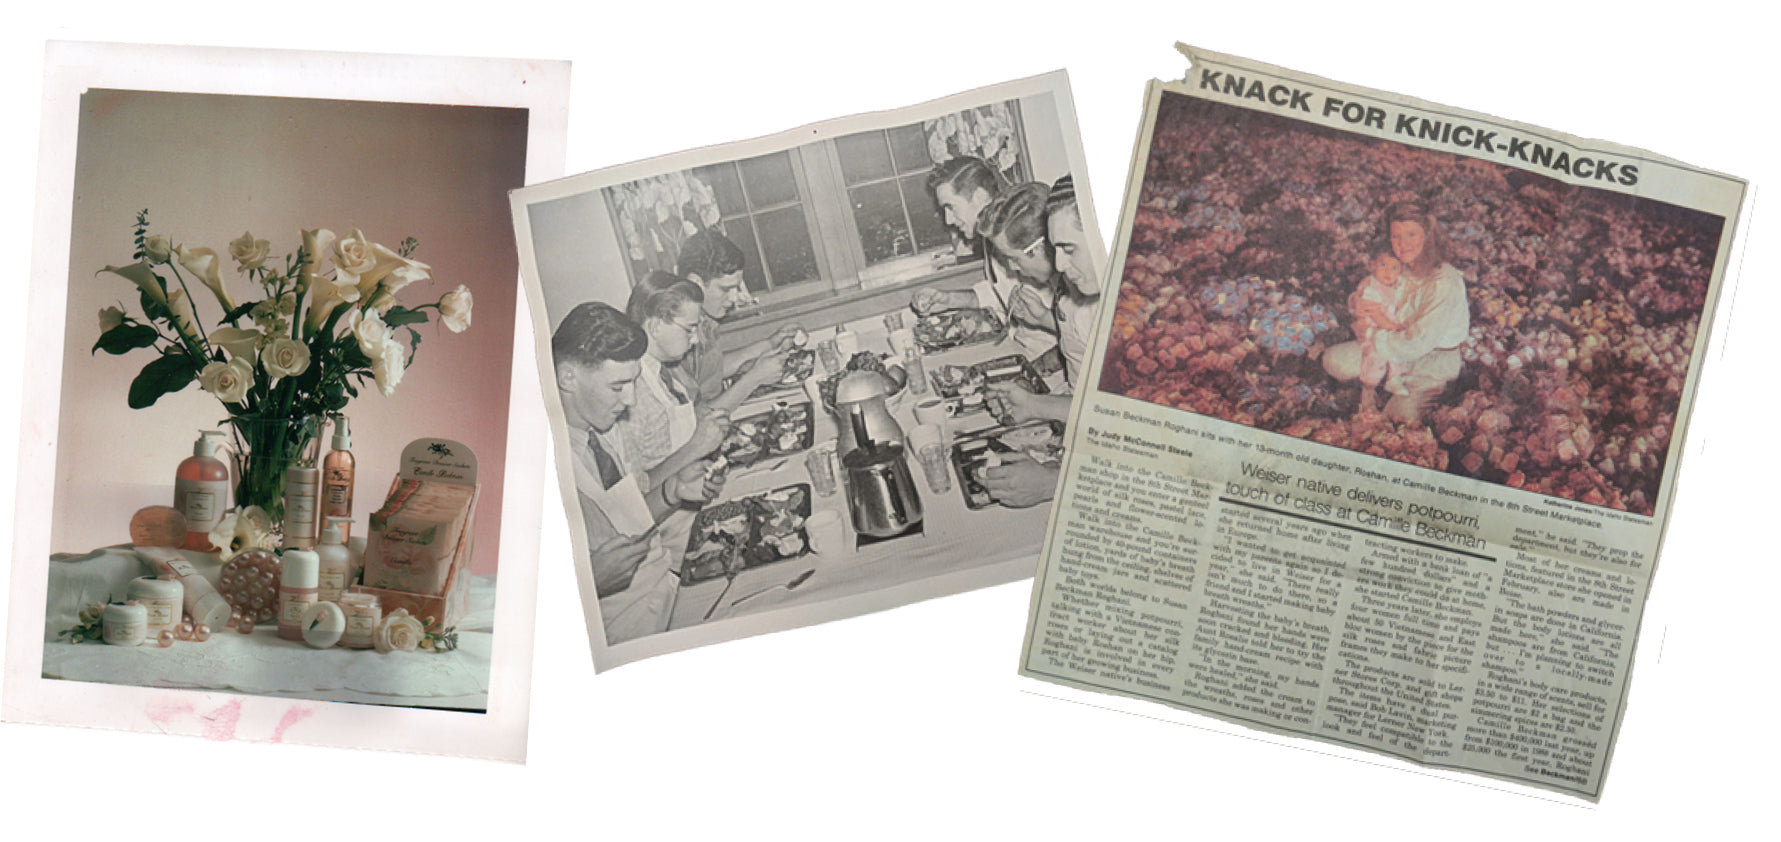 Old photos of a the family, a newspaper article and an original Camille advertisement.